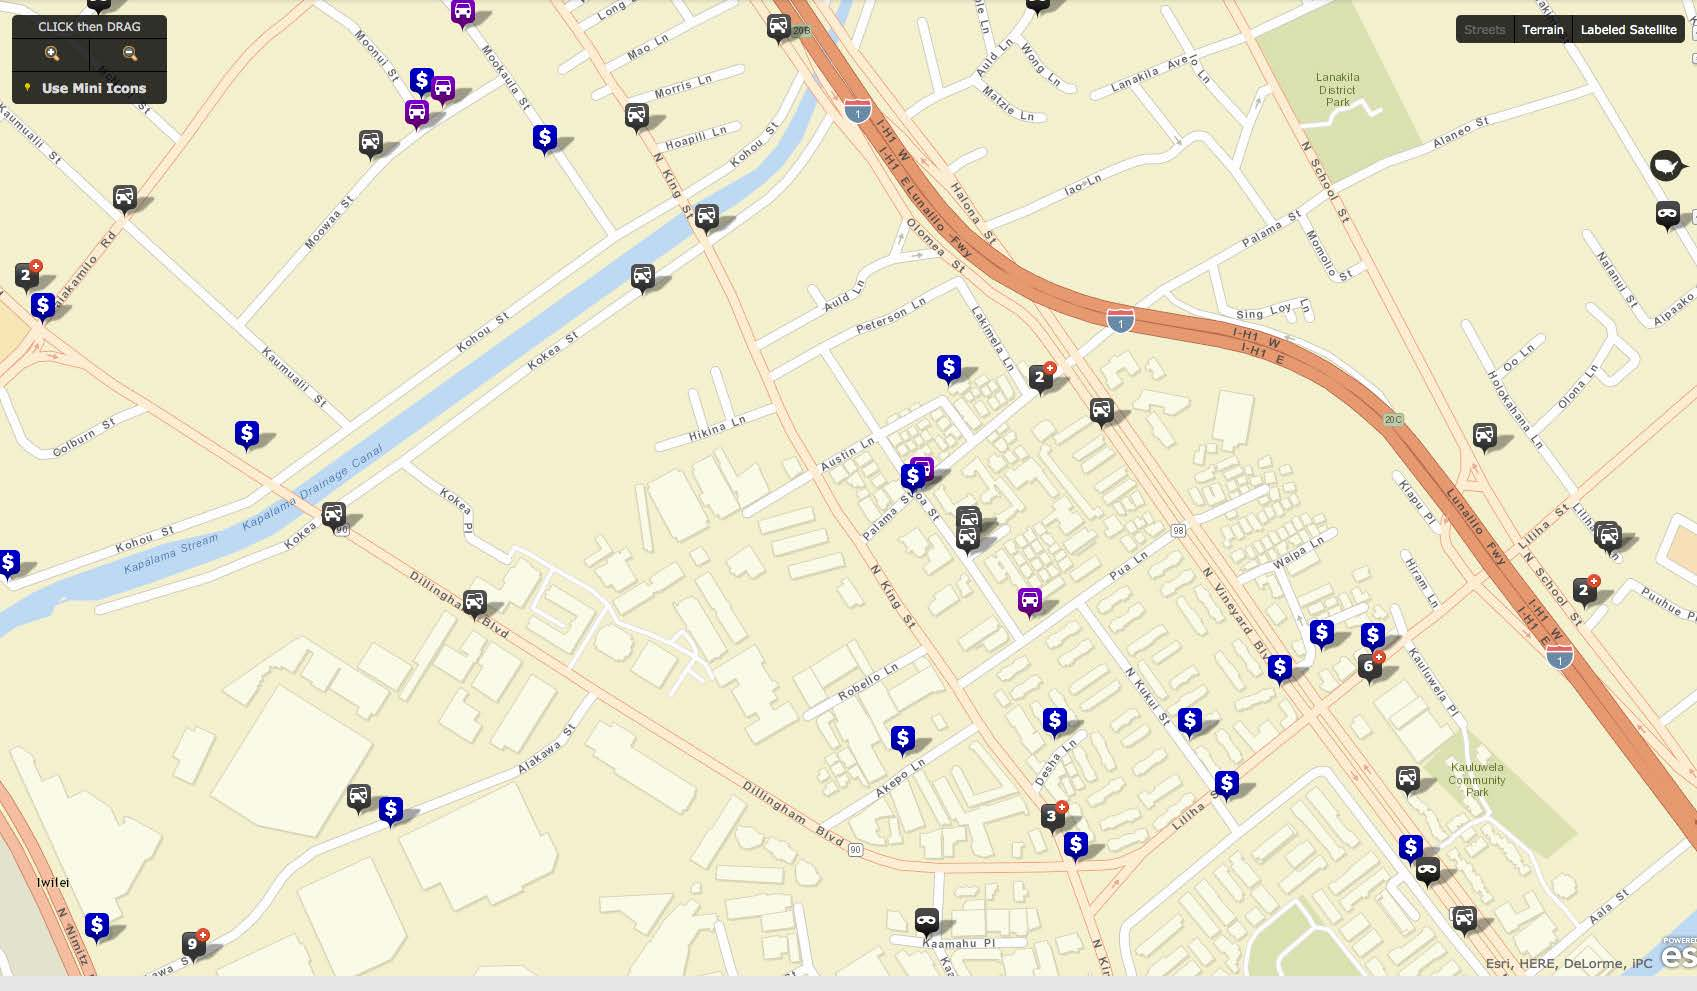 This map from Honolulu Police Department shows all the reported crimes in our neighborhood for the month of January. The campus is at the center of the map.